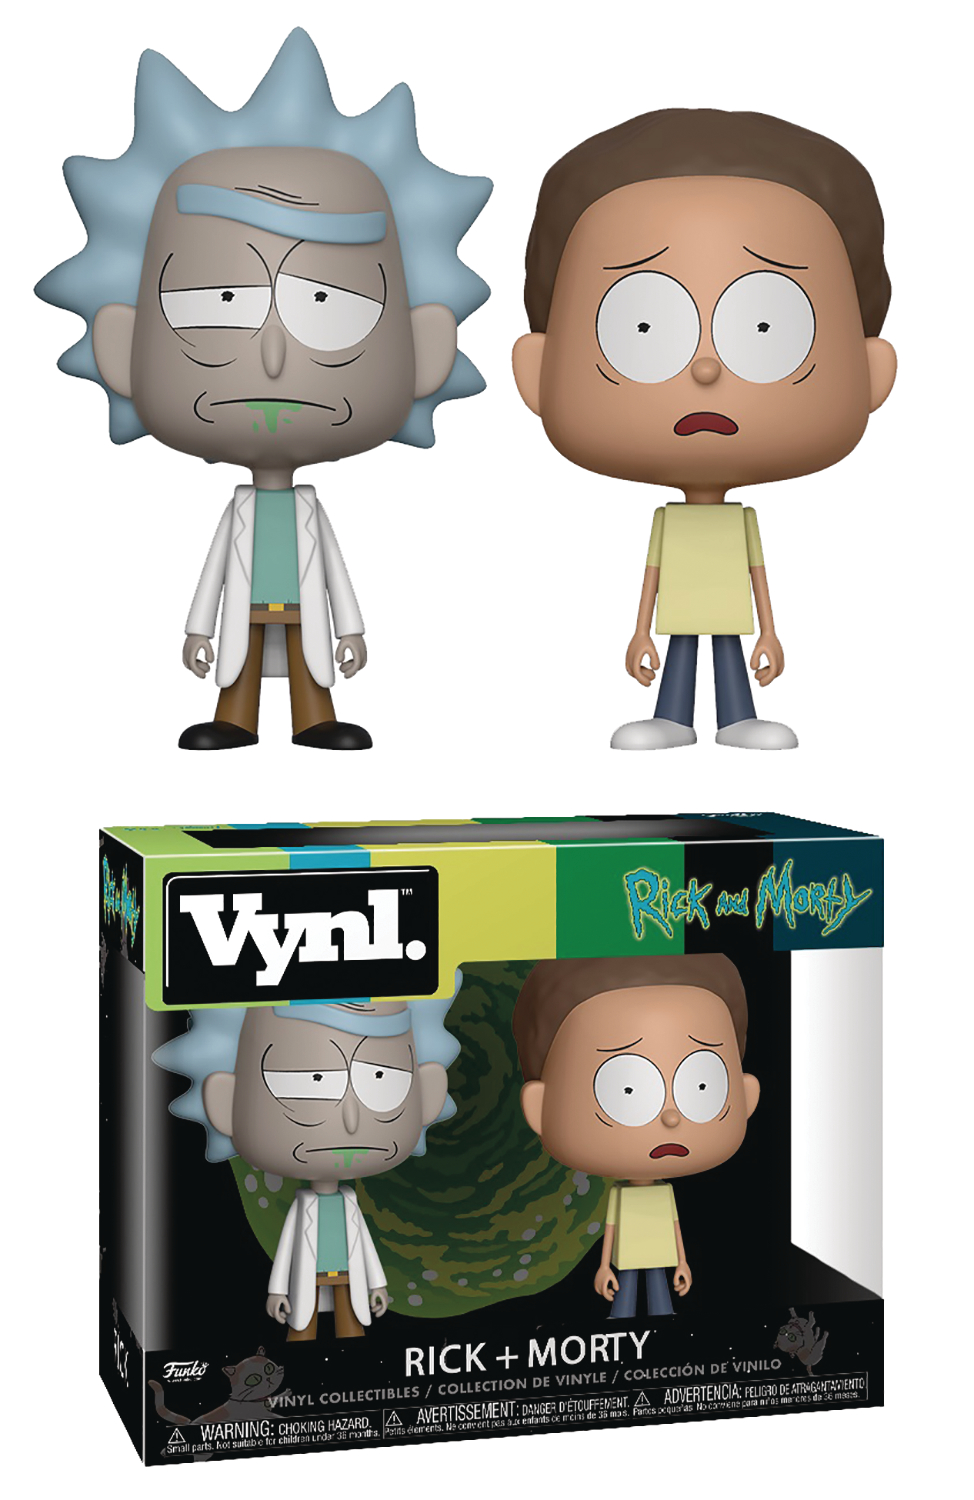 VYNL RICK & MORTY RICK & MORTY VINYL FIGURE 2PK